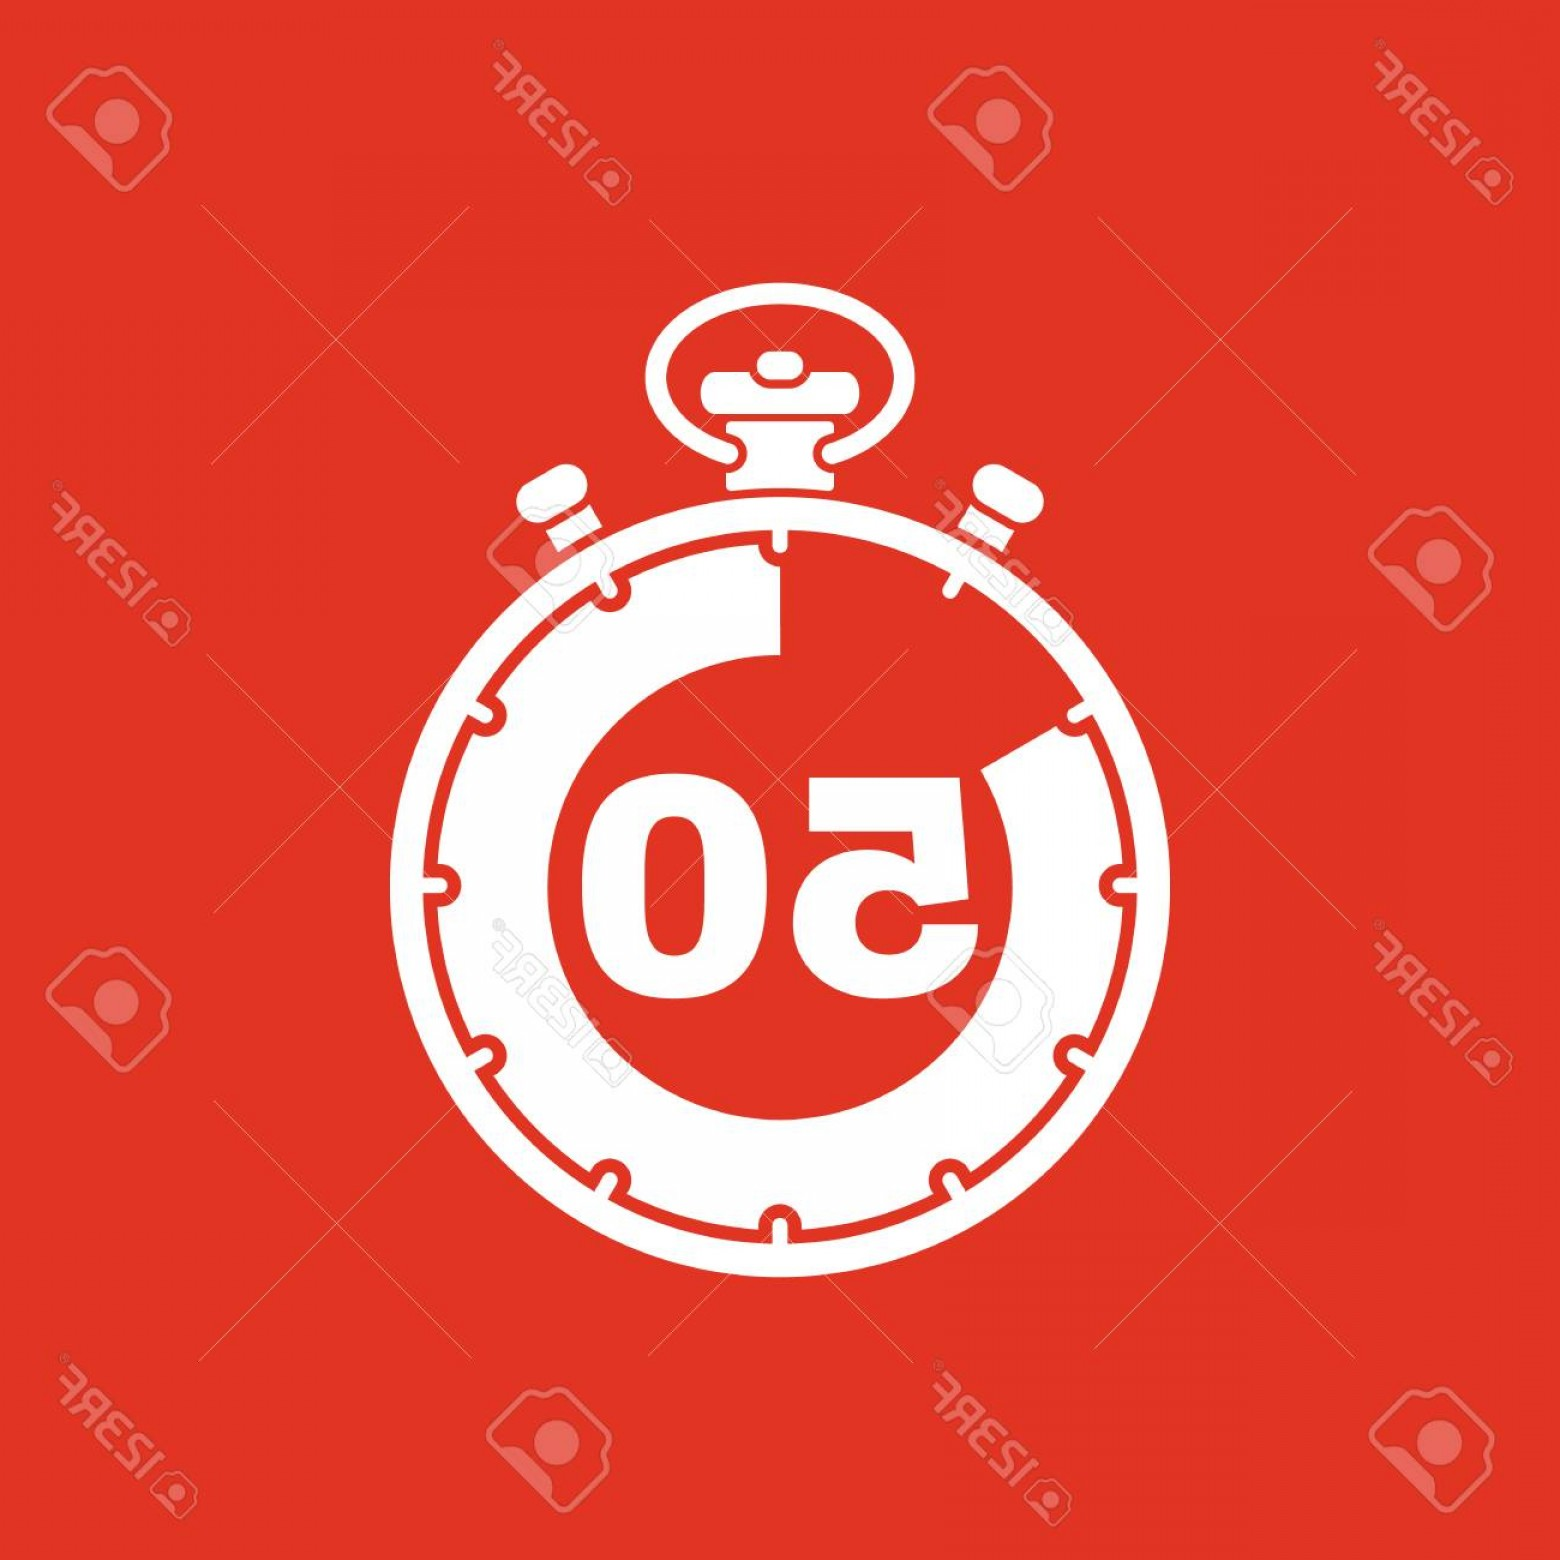 Vector S 50 Pics: Photostock Vector The Seconds Minutes Stopwatch Icon Clock And Watch Timer Countdown Stopwatch Symbol Ui Web Logo S